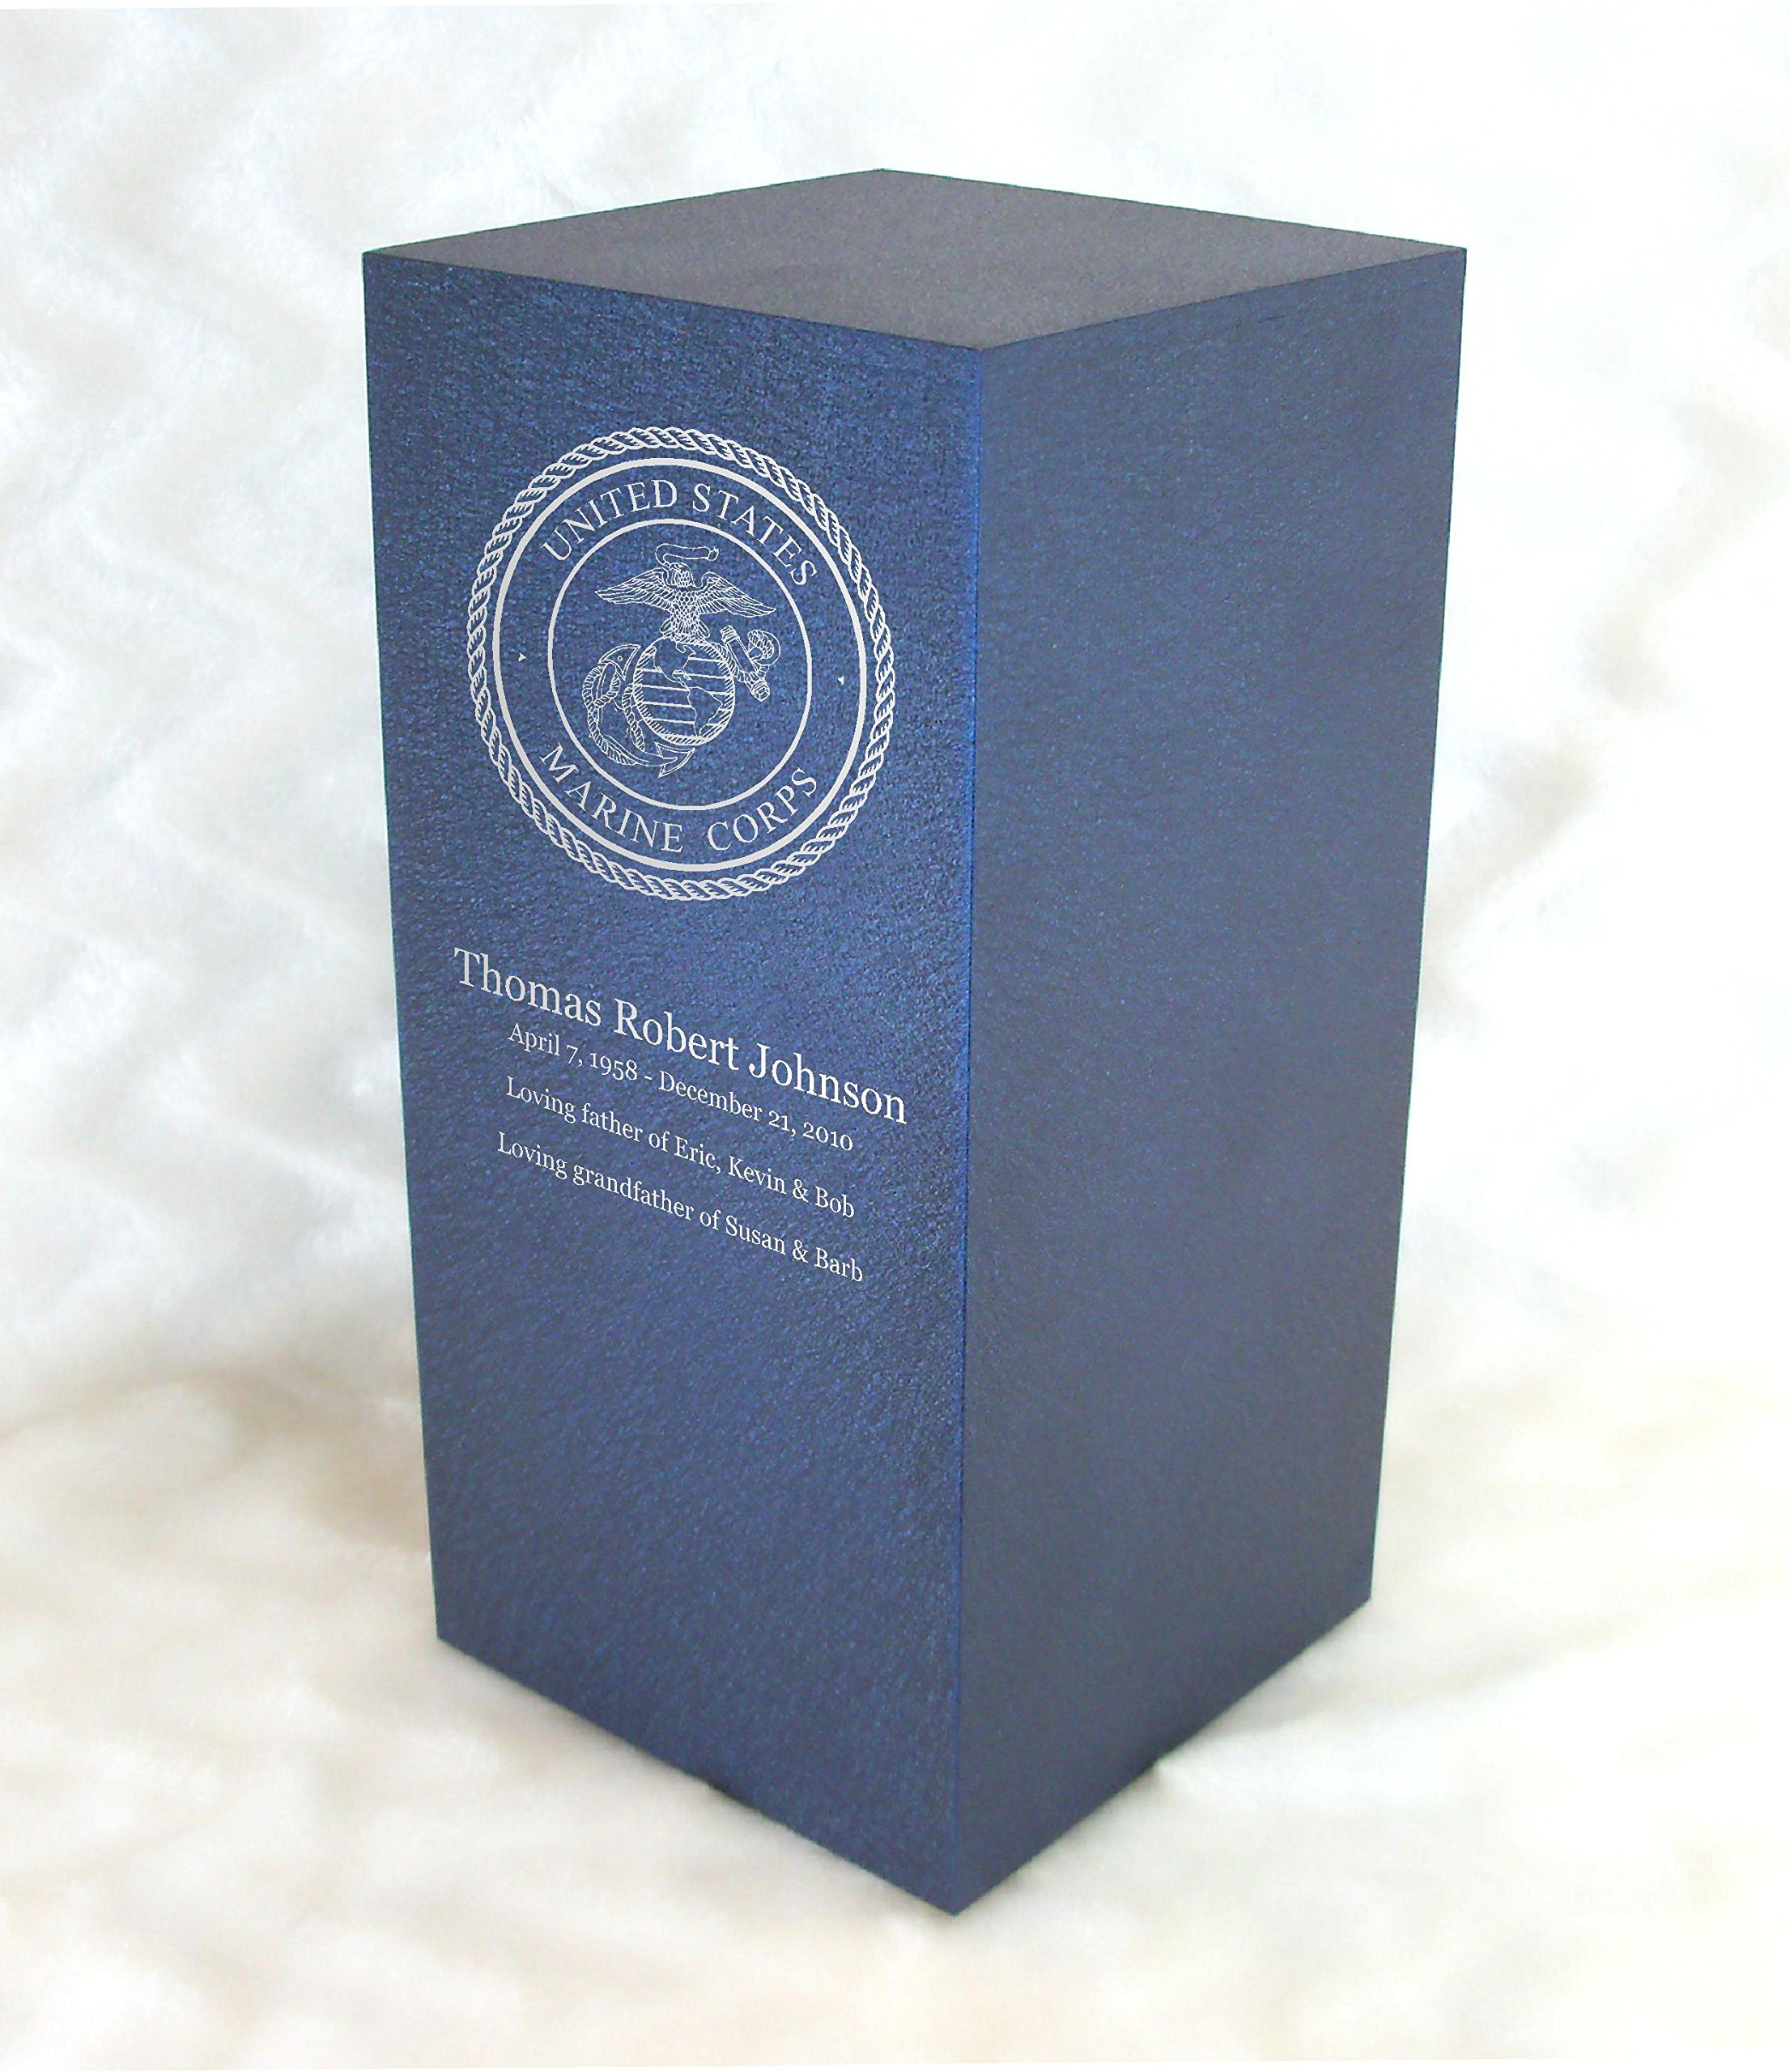 PERSONALIZED Engraved Marine Corps Cremation Urn for Human Ashes - Made in America - Handcrafted in the USA by Amaranthine Urns, Adult Funeral Urn - Eaton DL- up to 200 lbs living weight Deep Sea Blue